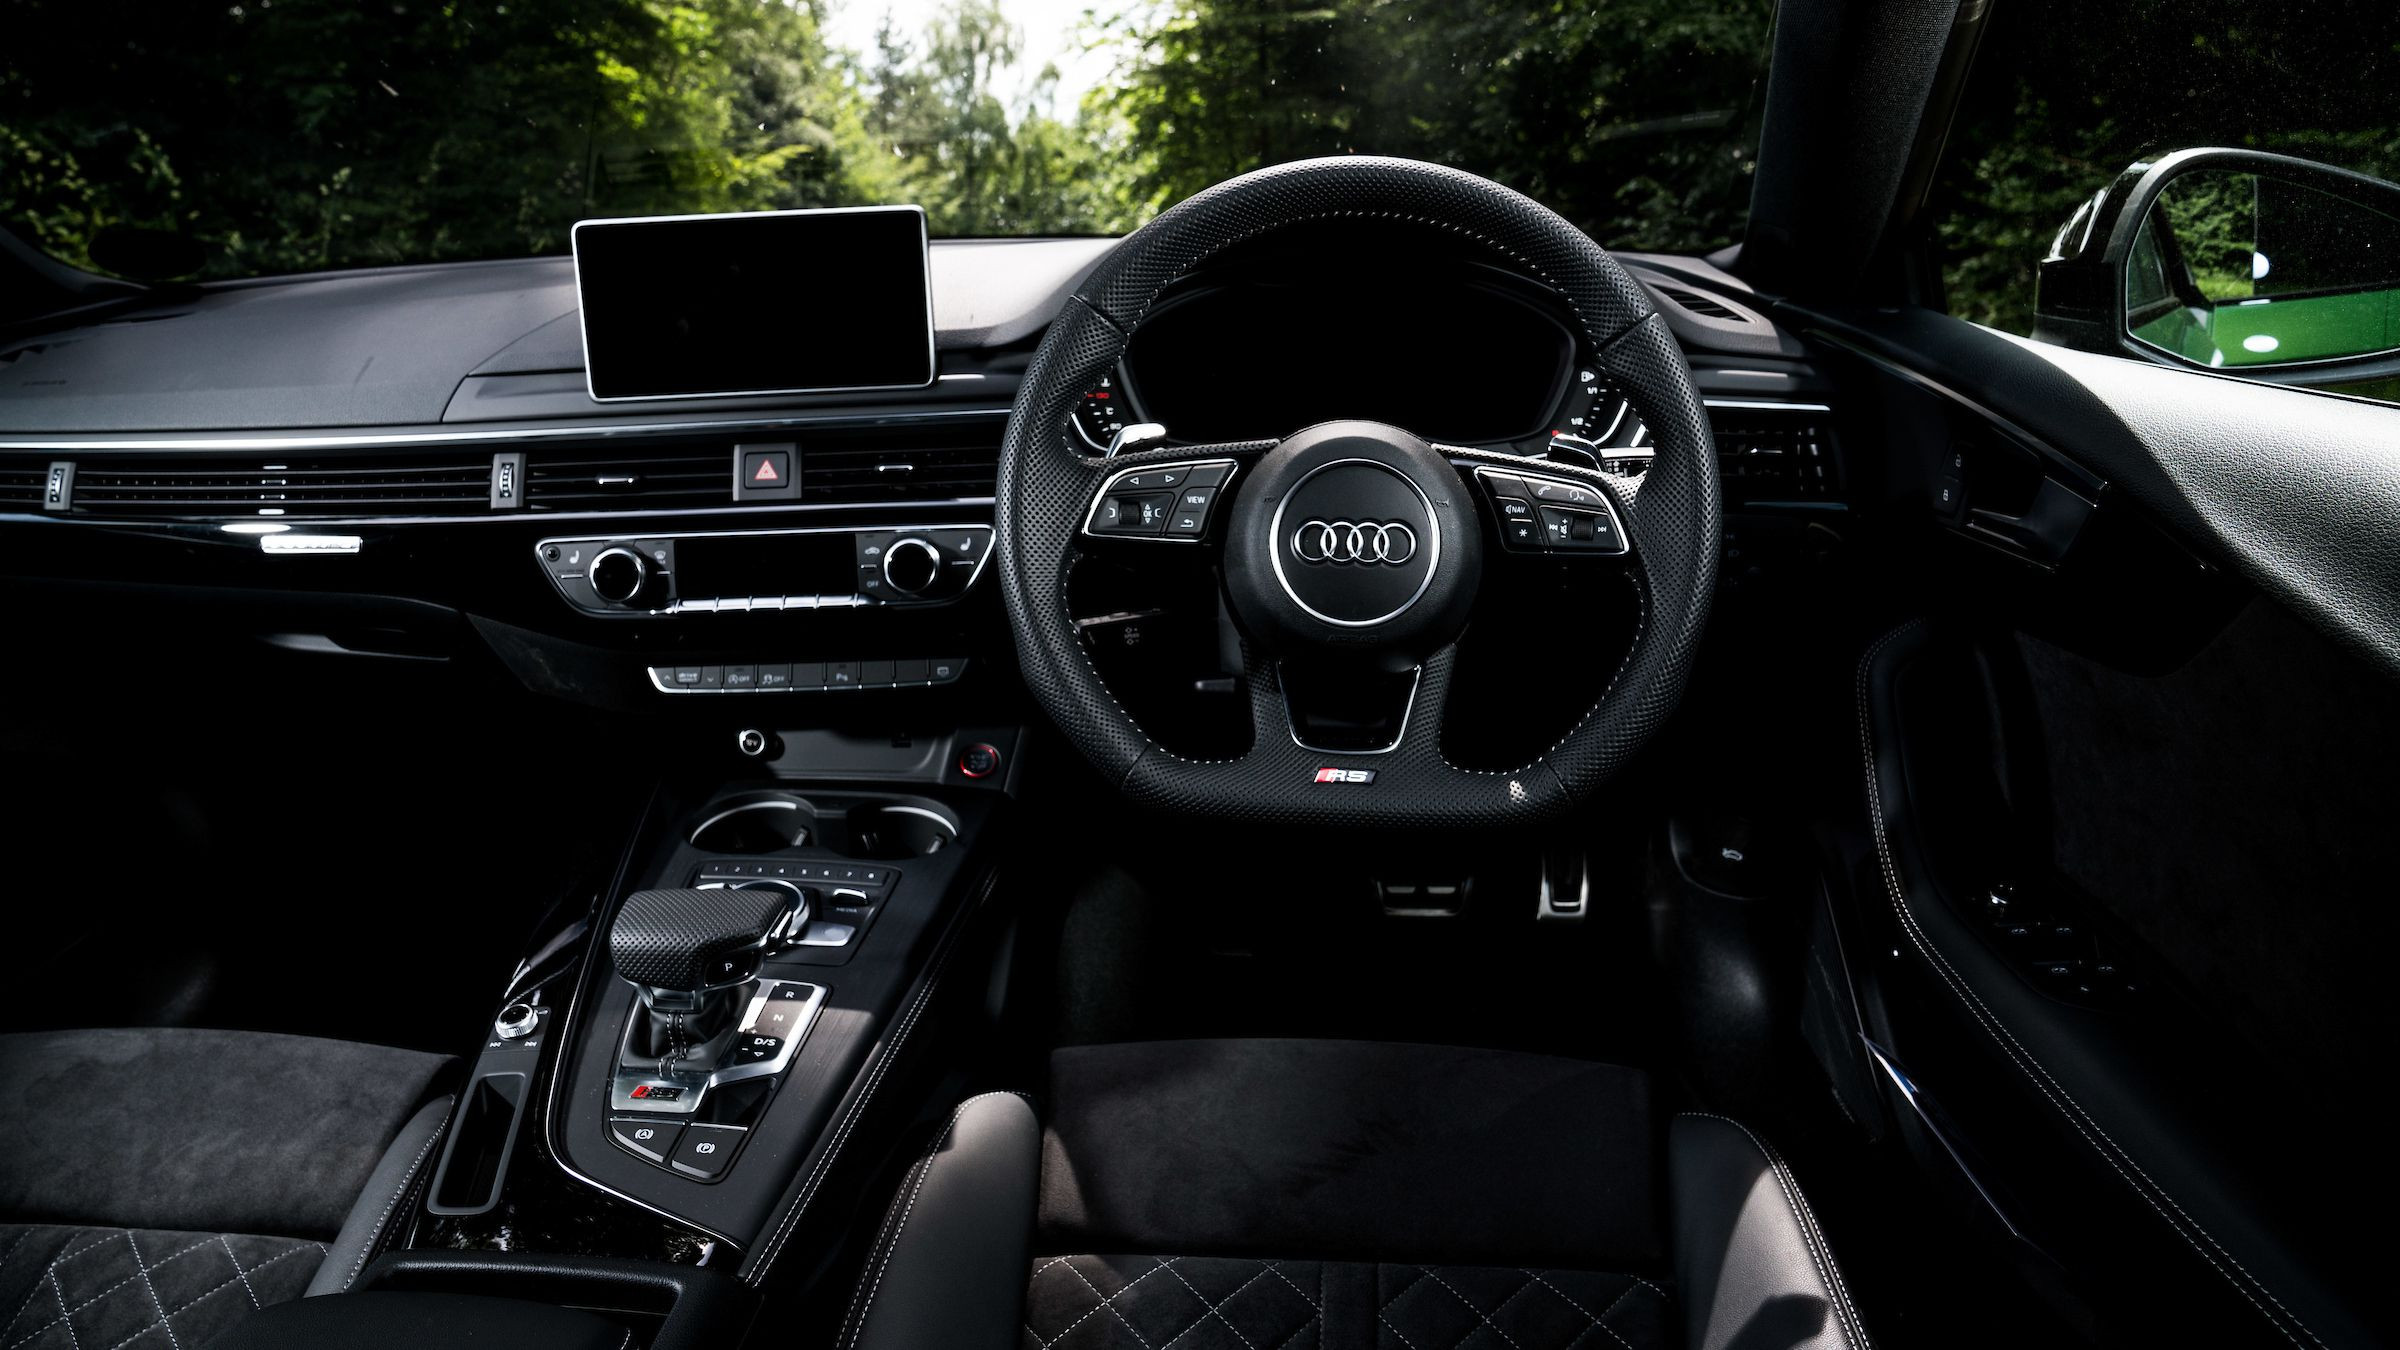 Interior of the Audi RS5 Sportback